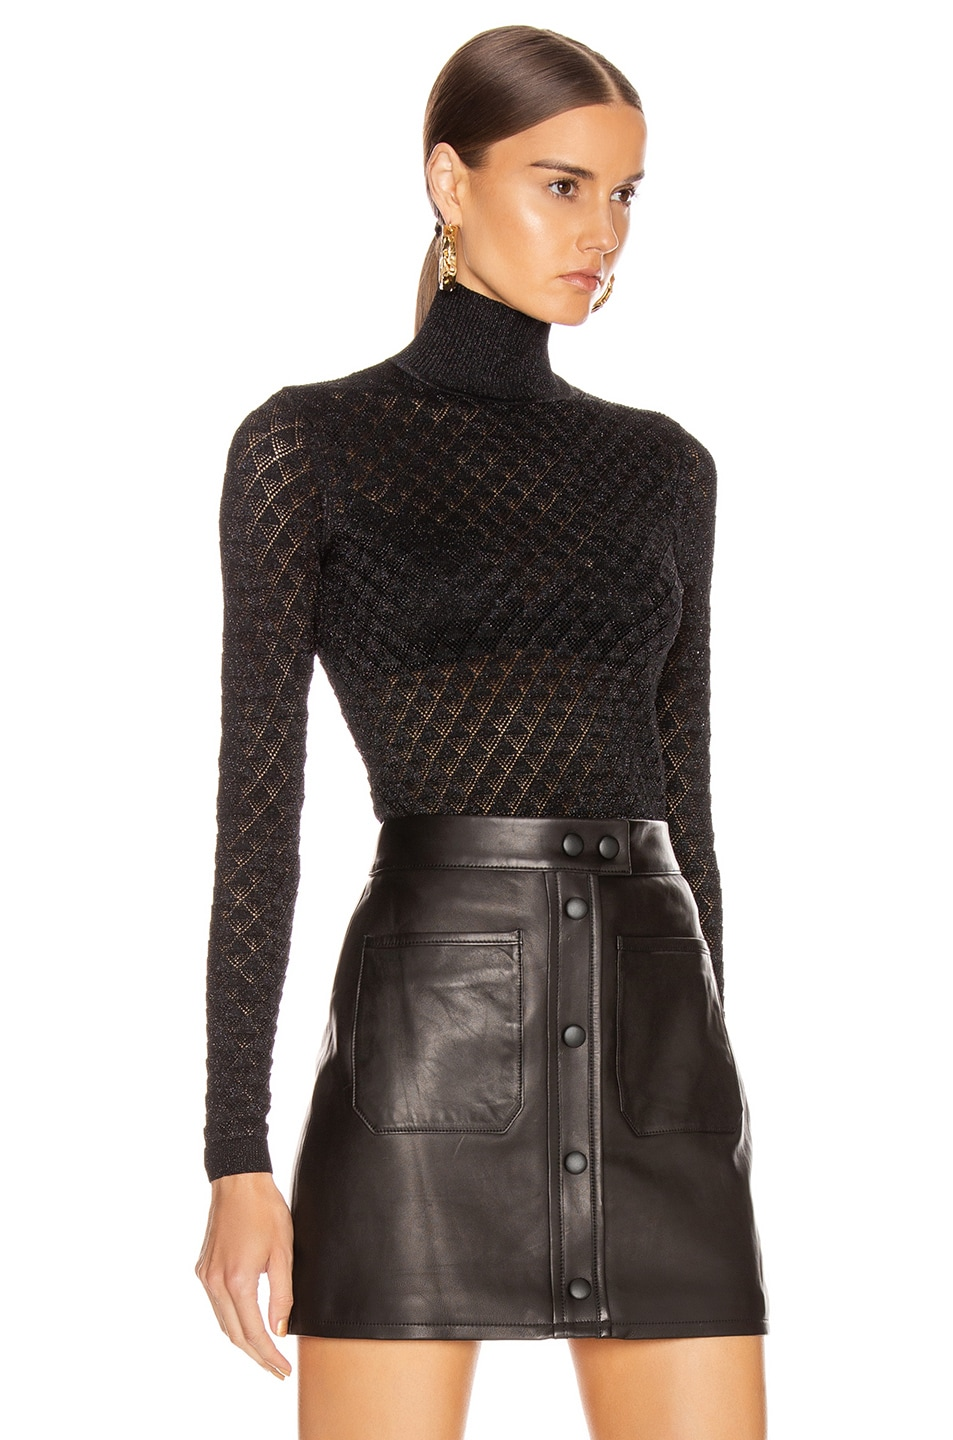 Image 2 of Cinq a Sept Lilette Turtleneck Top in Black Metallic